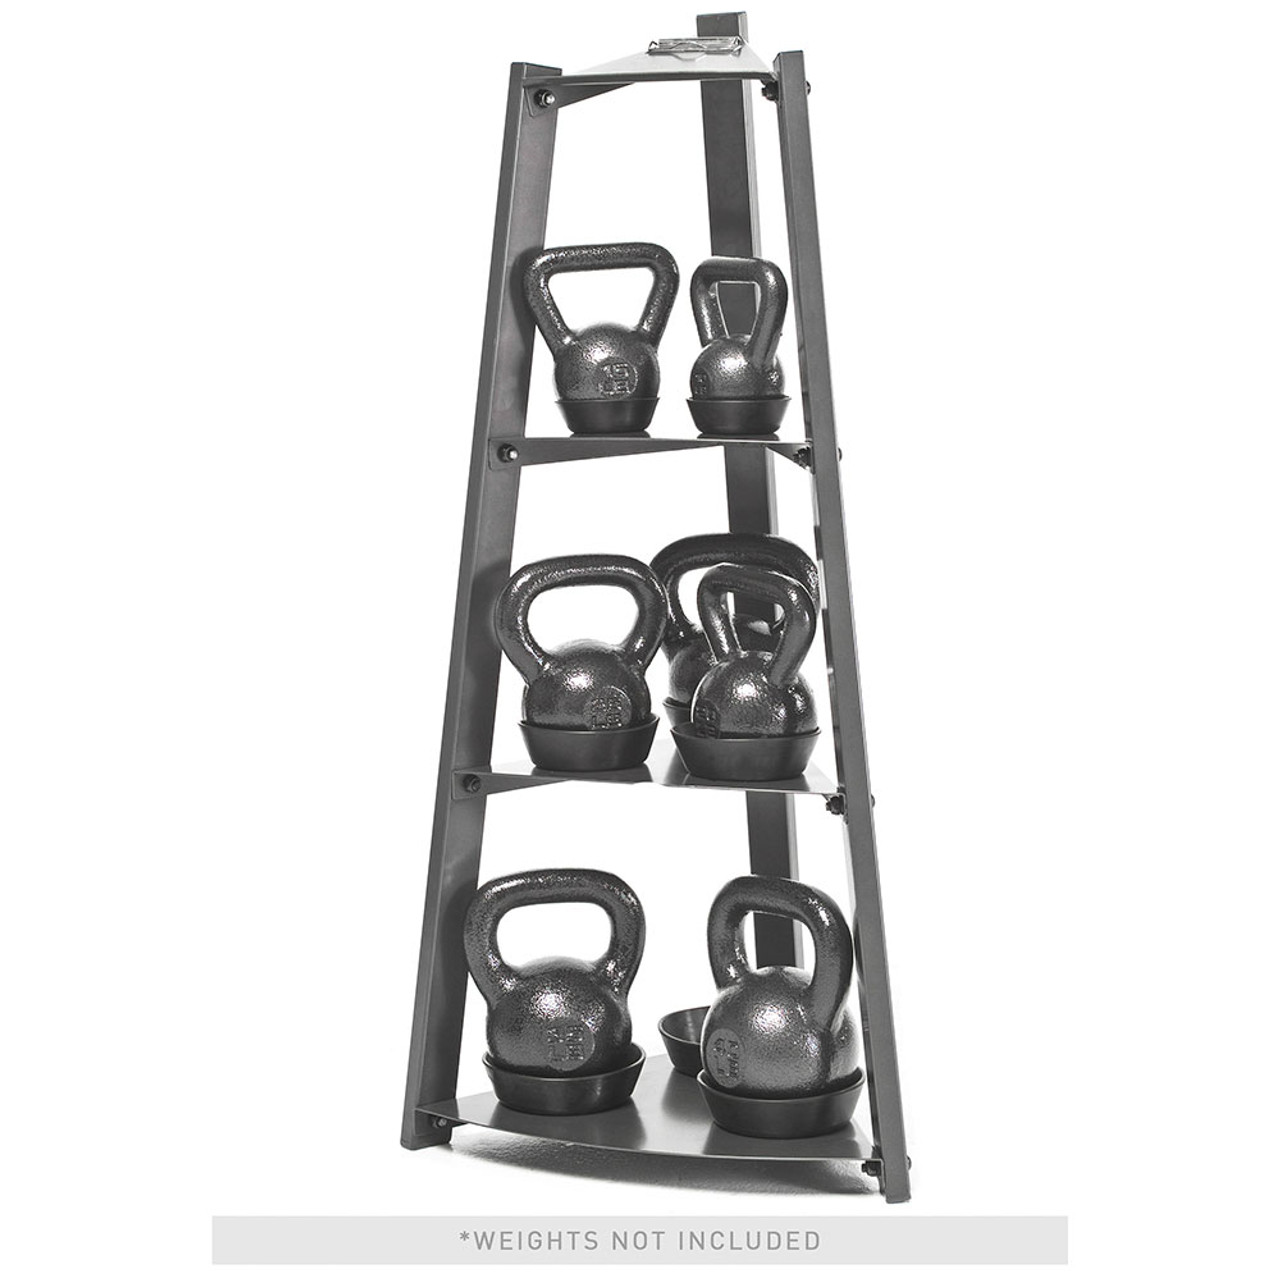 The Apex 3 Tier Kettlebell Rack VKBS-1N organizes your kettlebell set